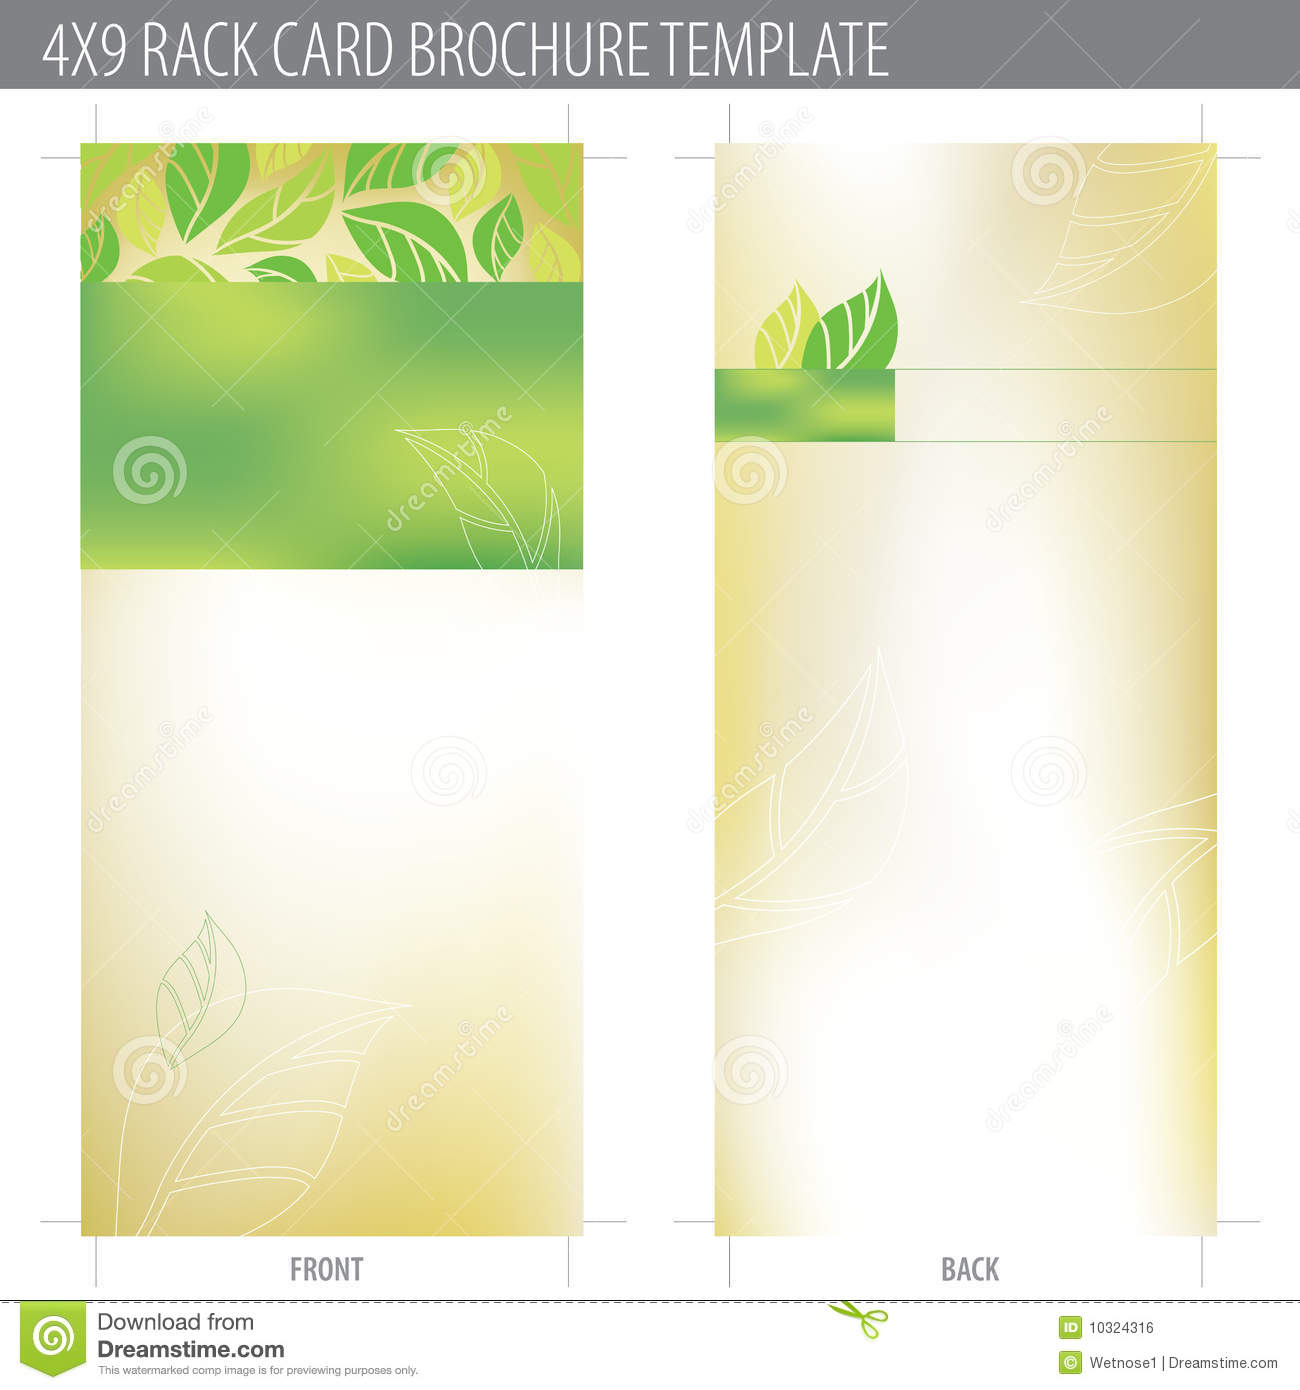 4x9 rack card brochure template stock vector image 10324316 for Brochure template online